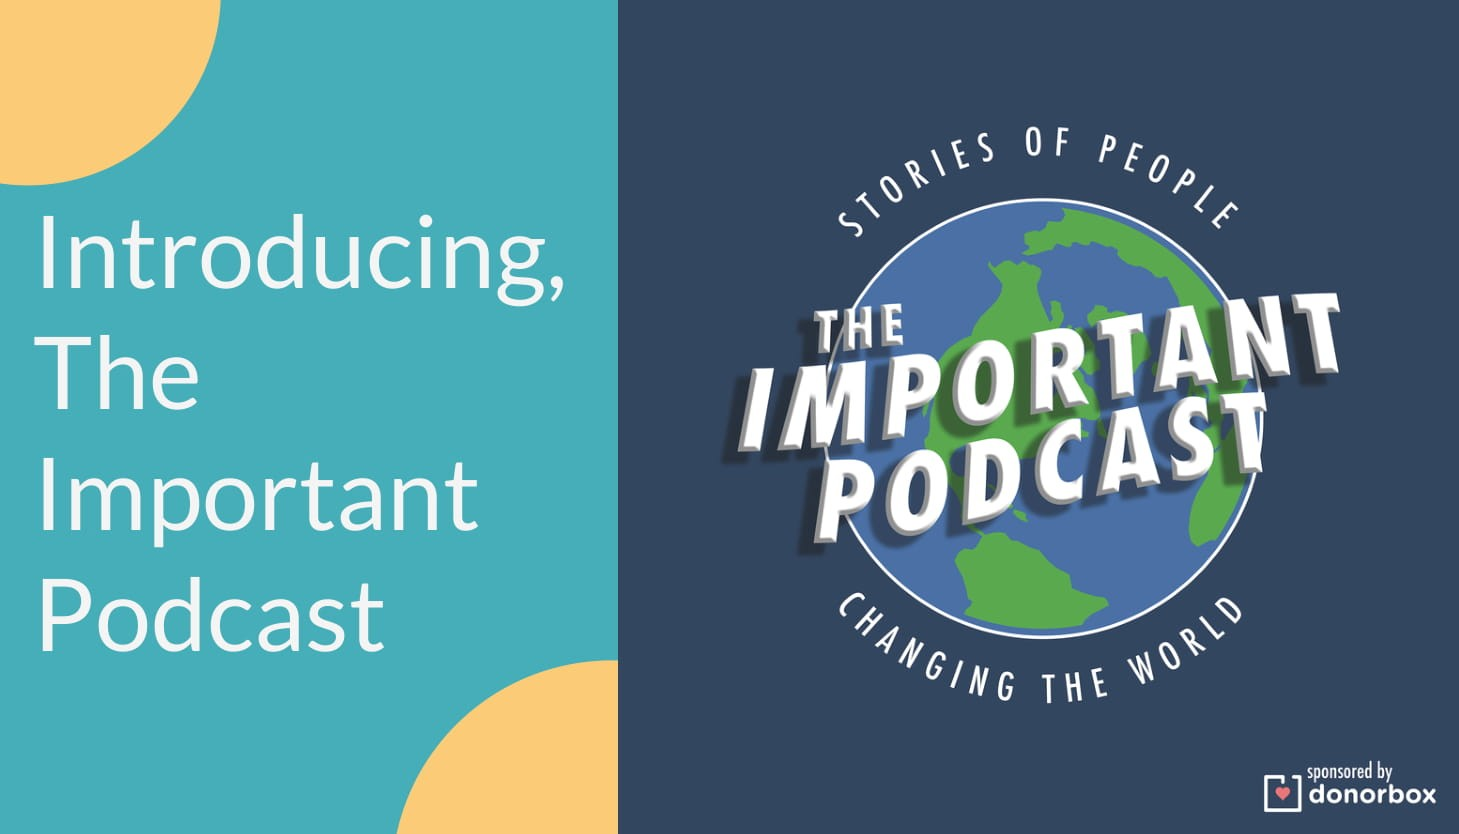 Introducing, The Important Podcast